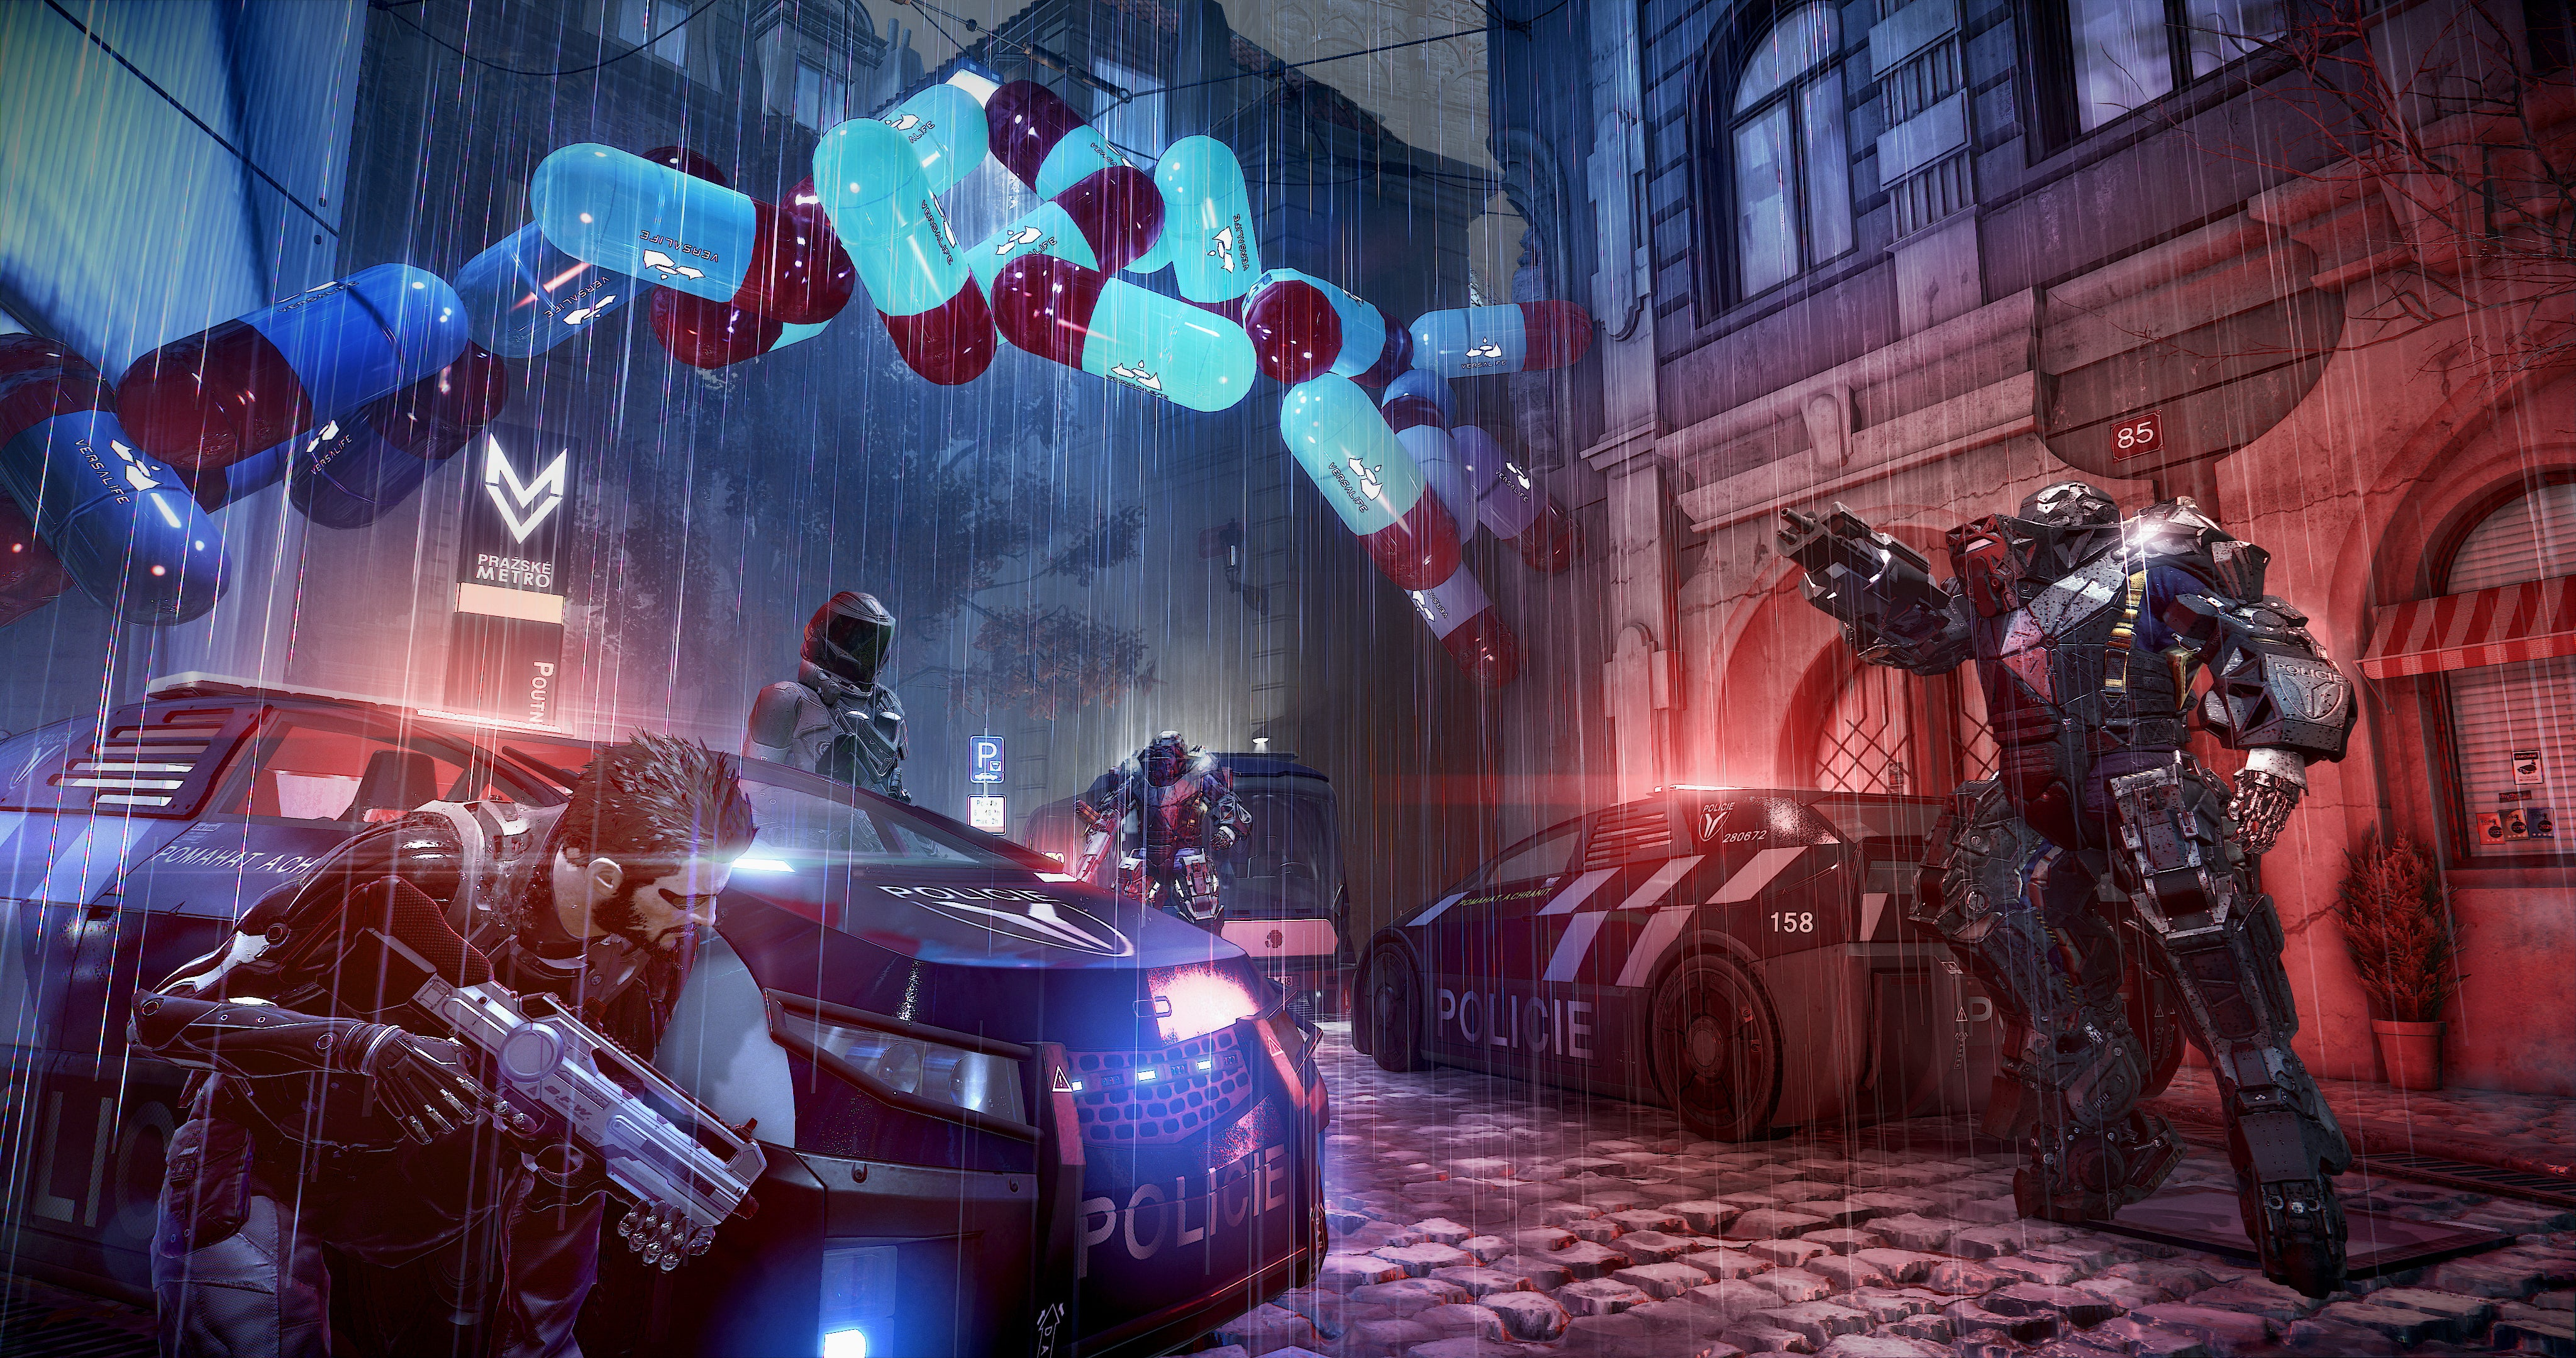 Some good pc games to pass time?